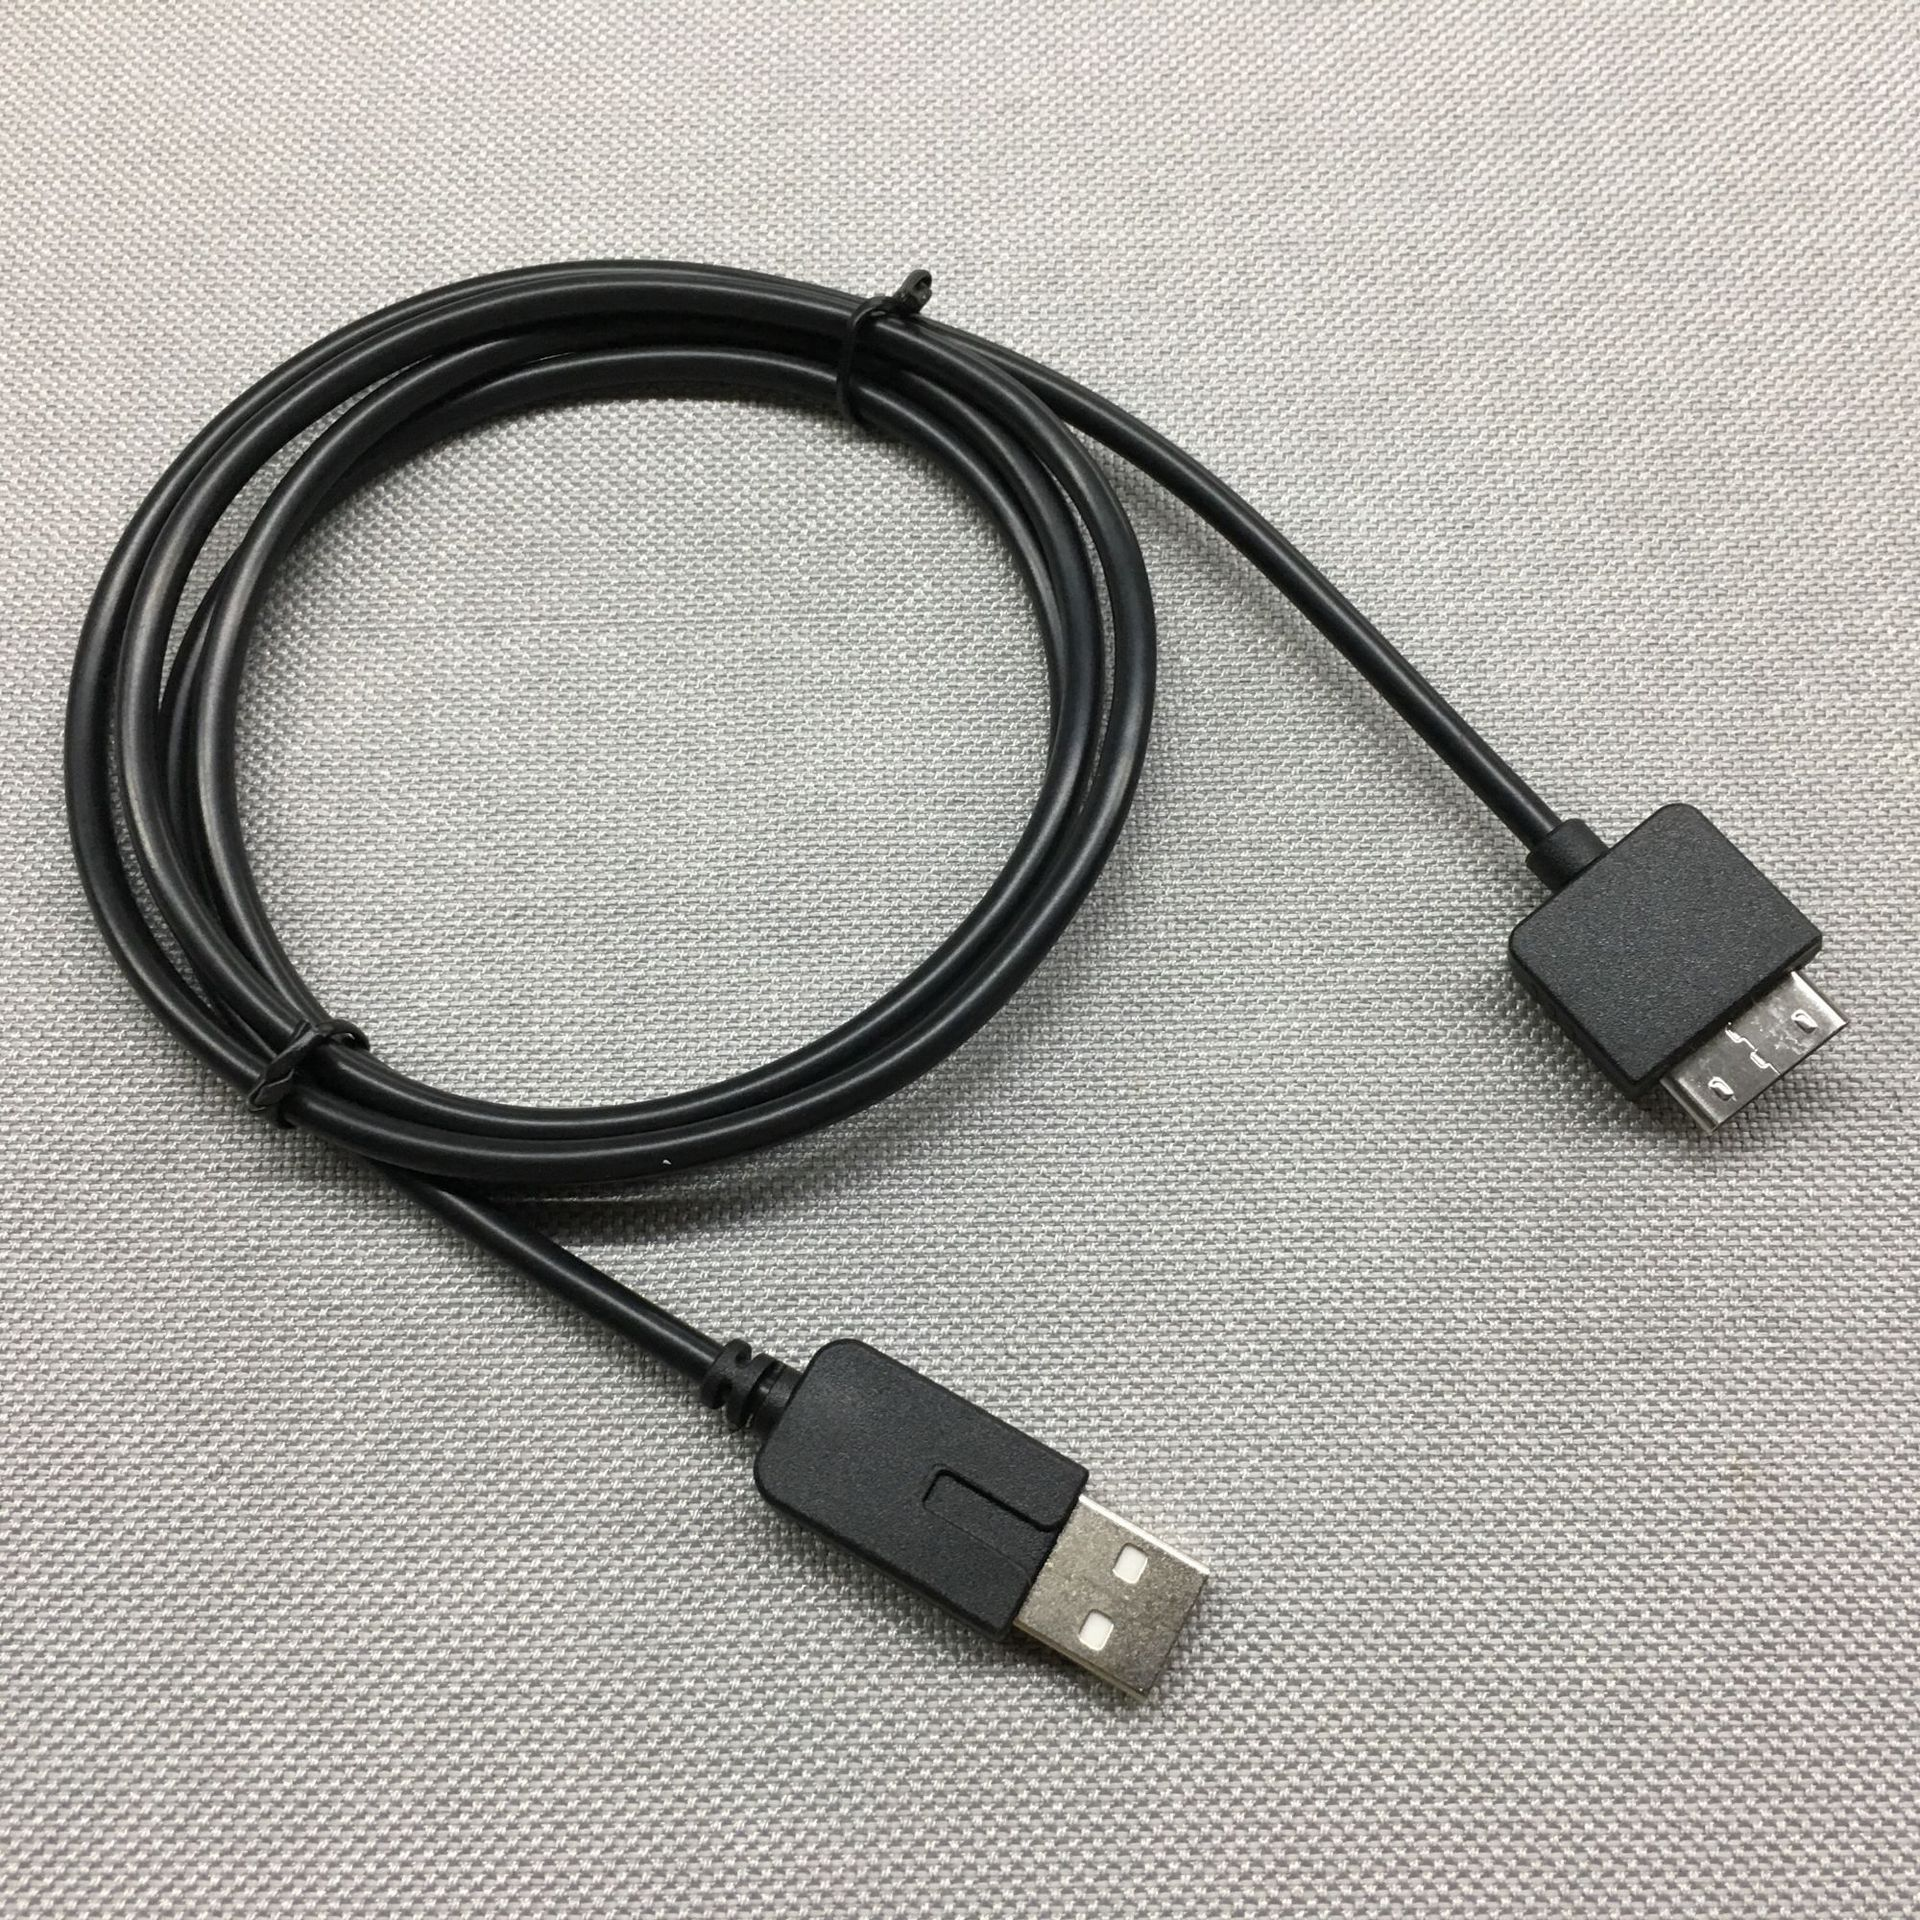 1000pcs USB Data Cable for PSPGO Charging Fast